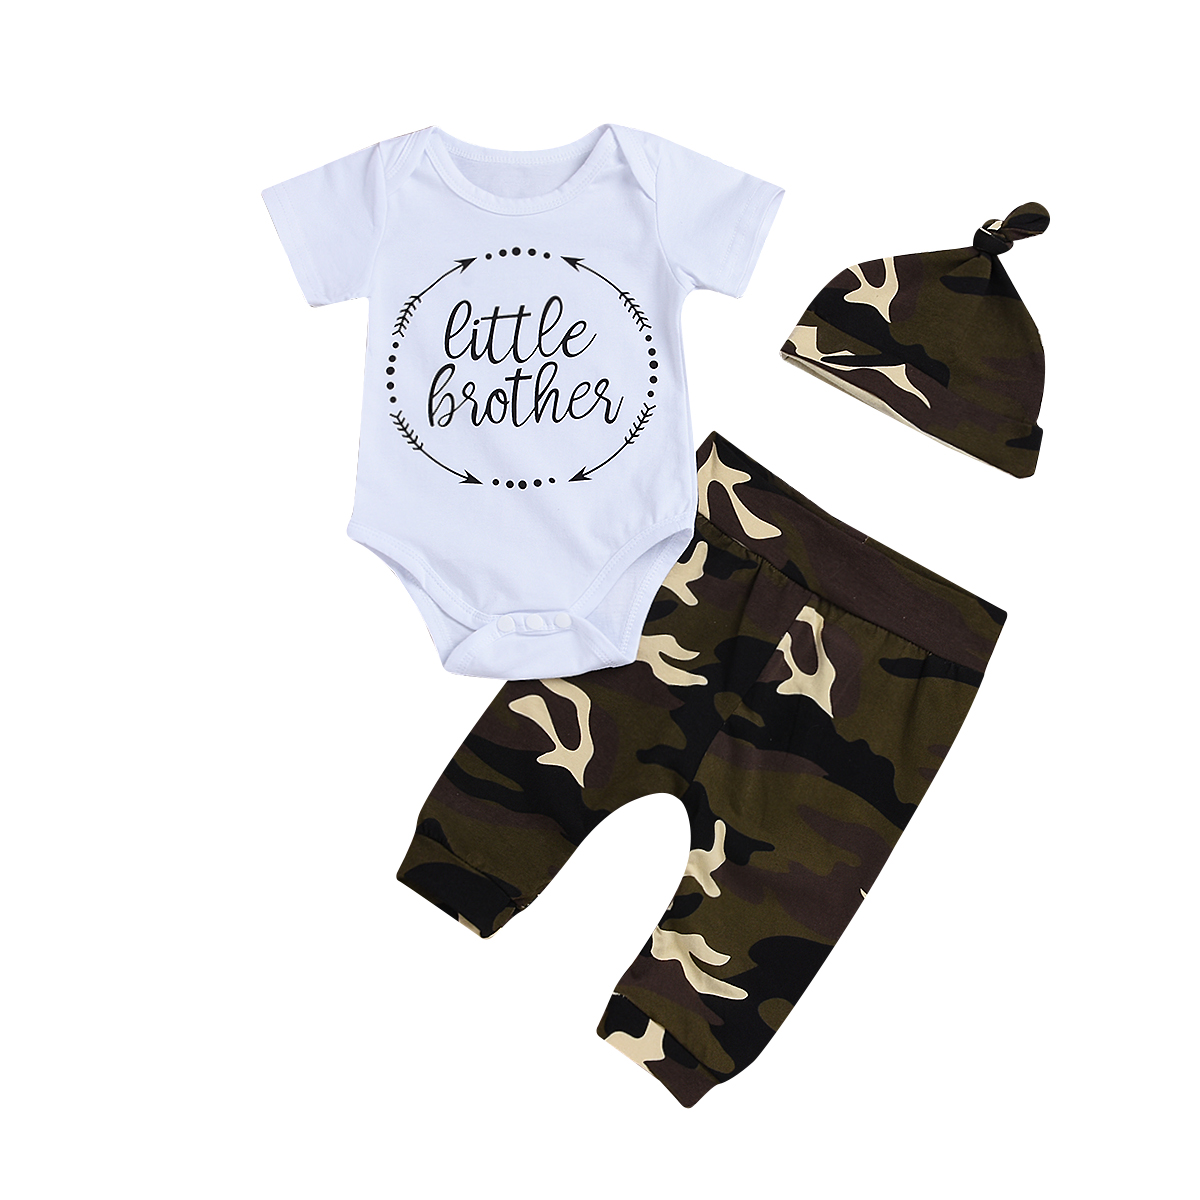 Boy Suits Casual Newborn Infant Baby Boy Little Brother Short/Long Sleeve 3Pcs Camo Outfits Romper Pants Set 0-24M